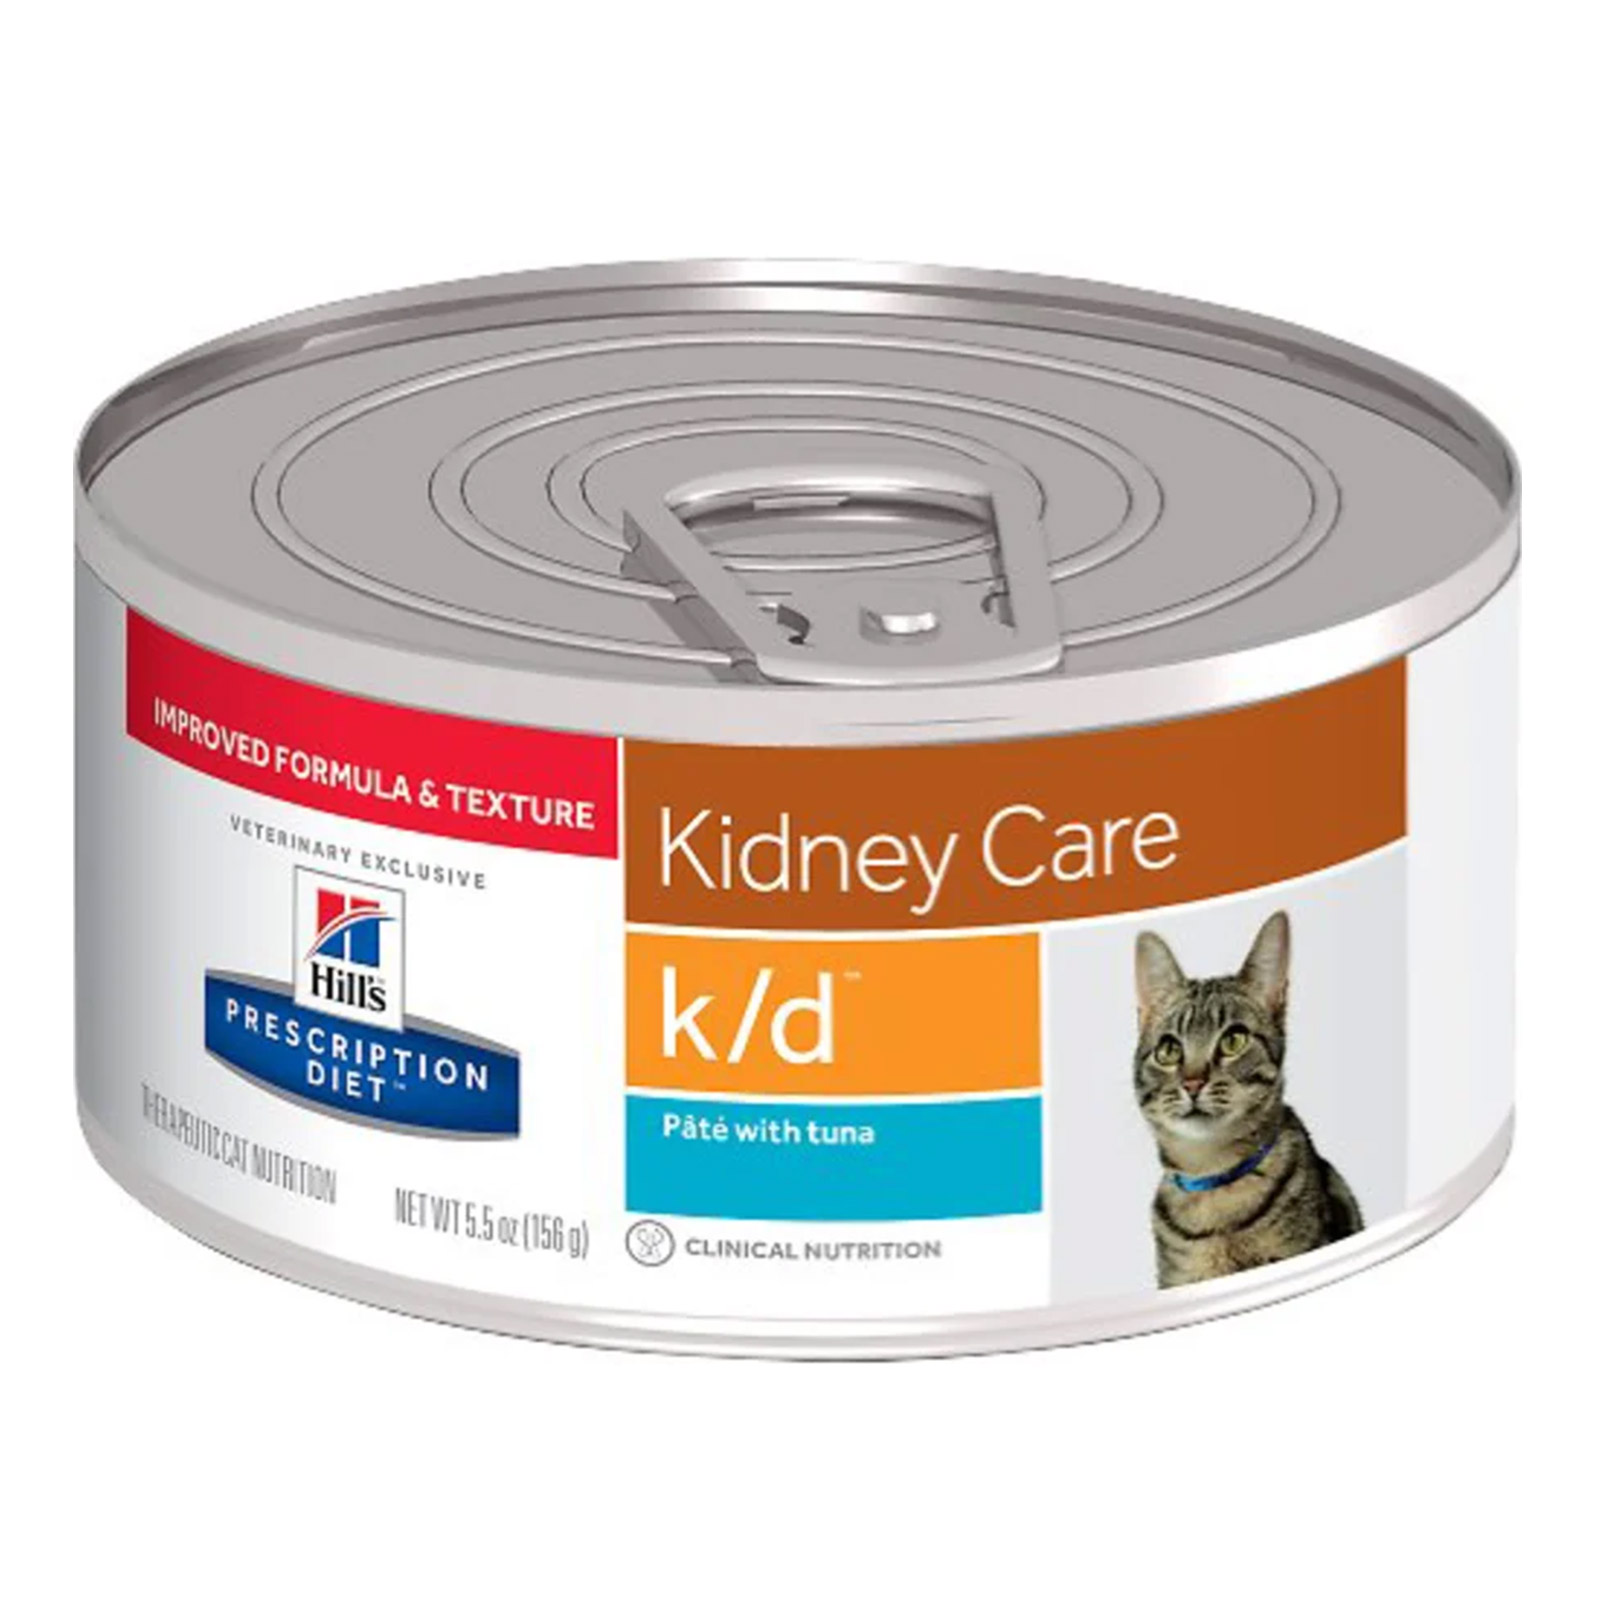 Hill's Prescription Diet k/d Kidney Care with Tuna Canned Cat Food 156 Gm